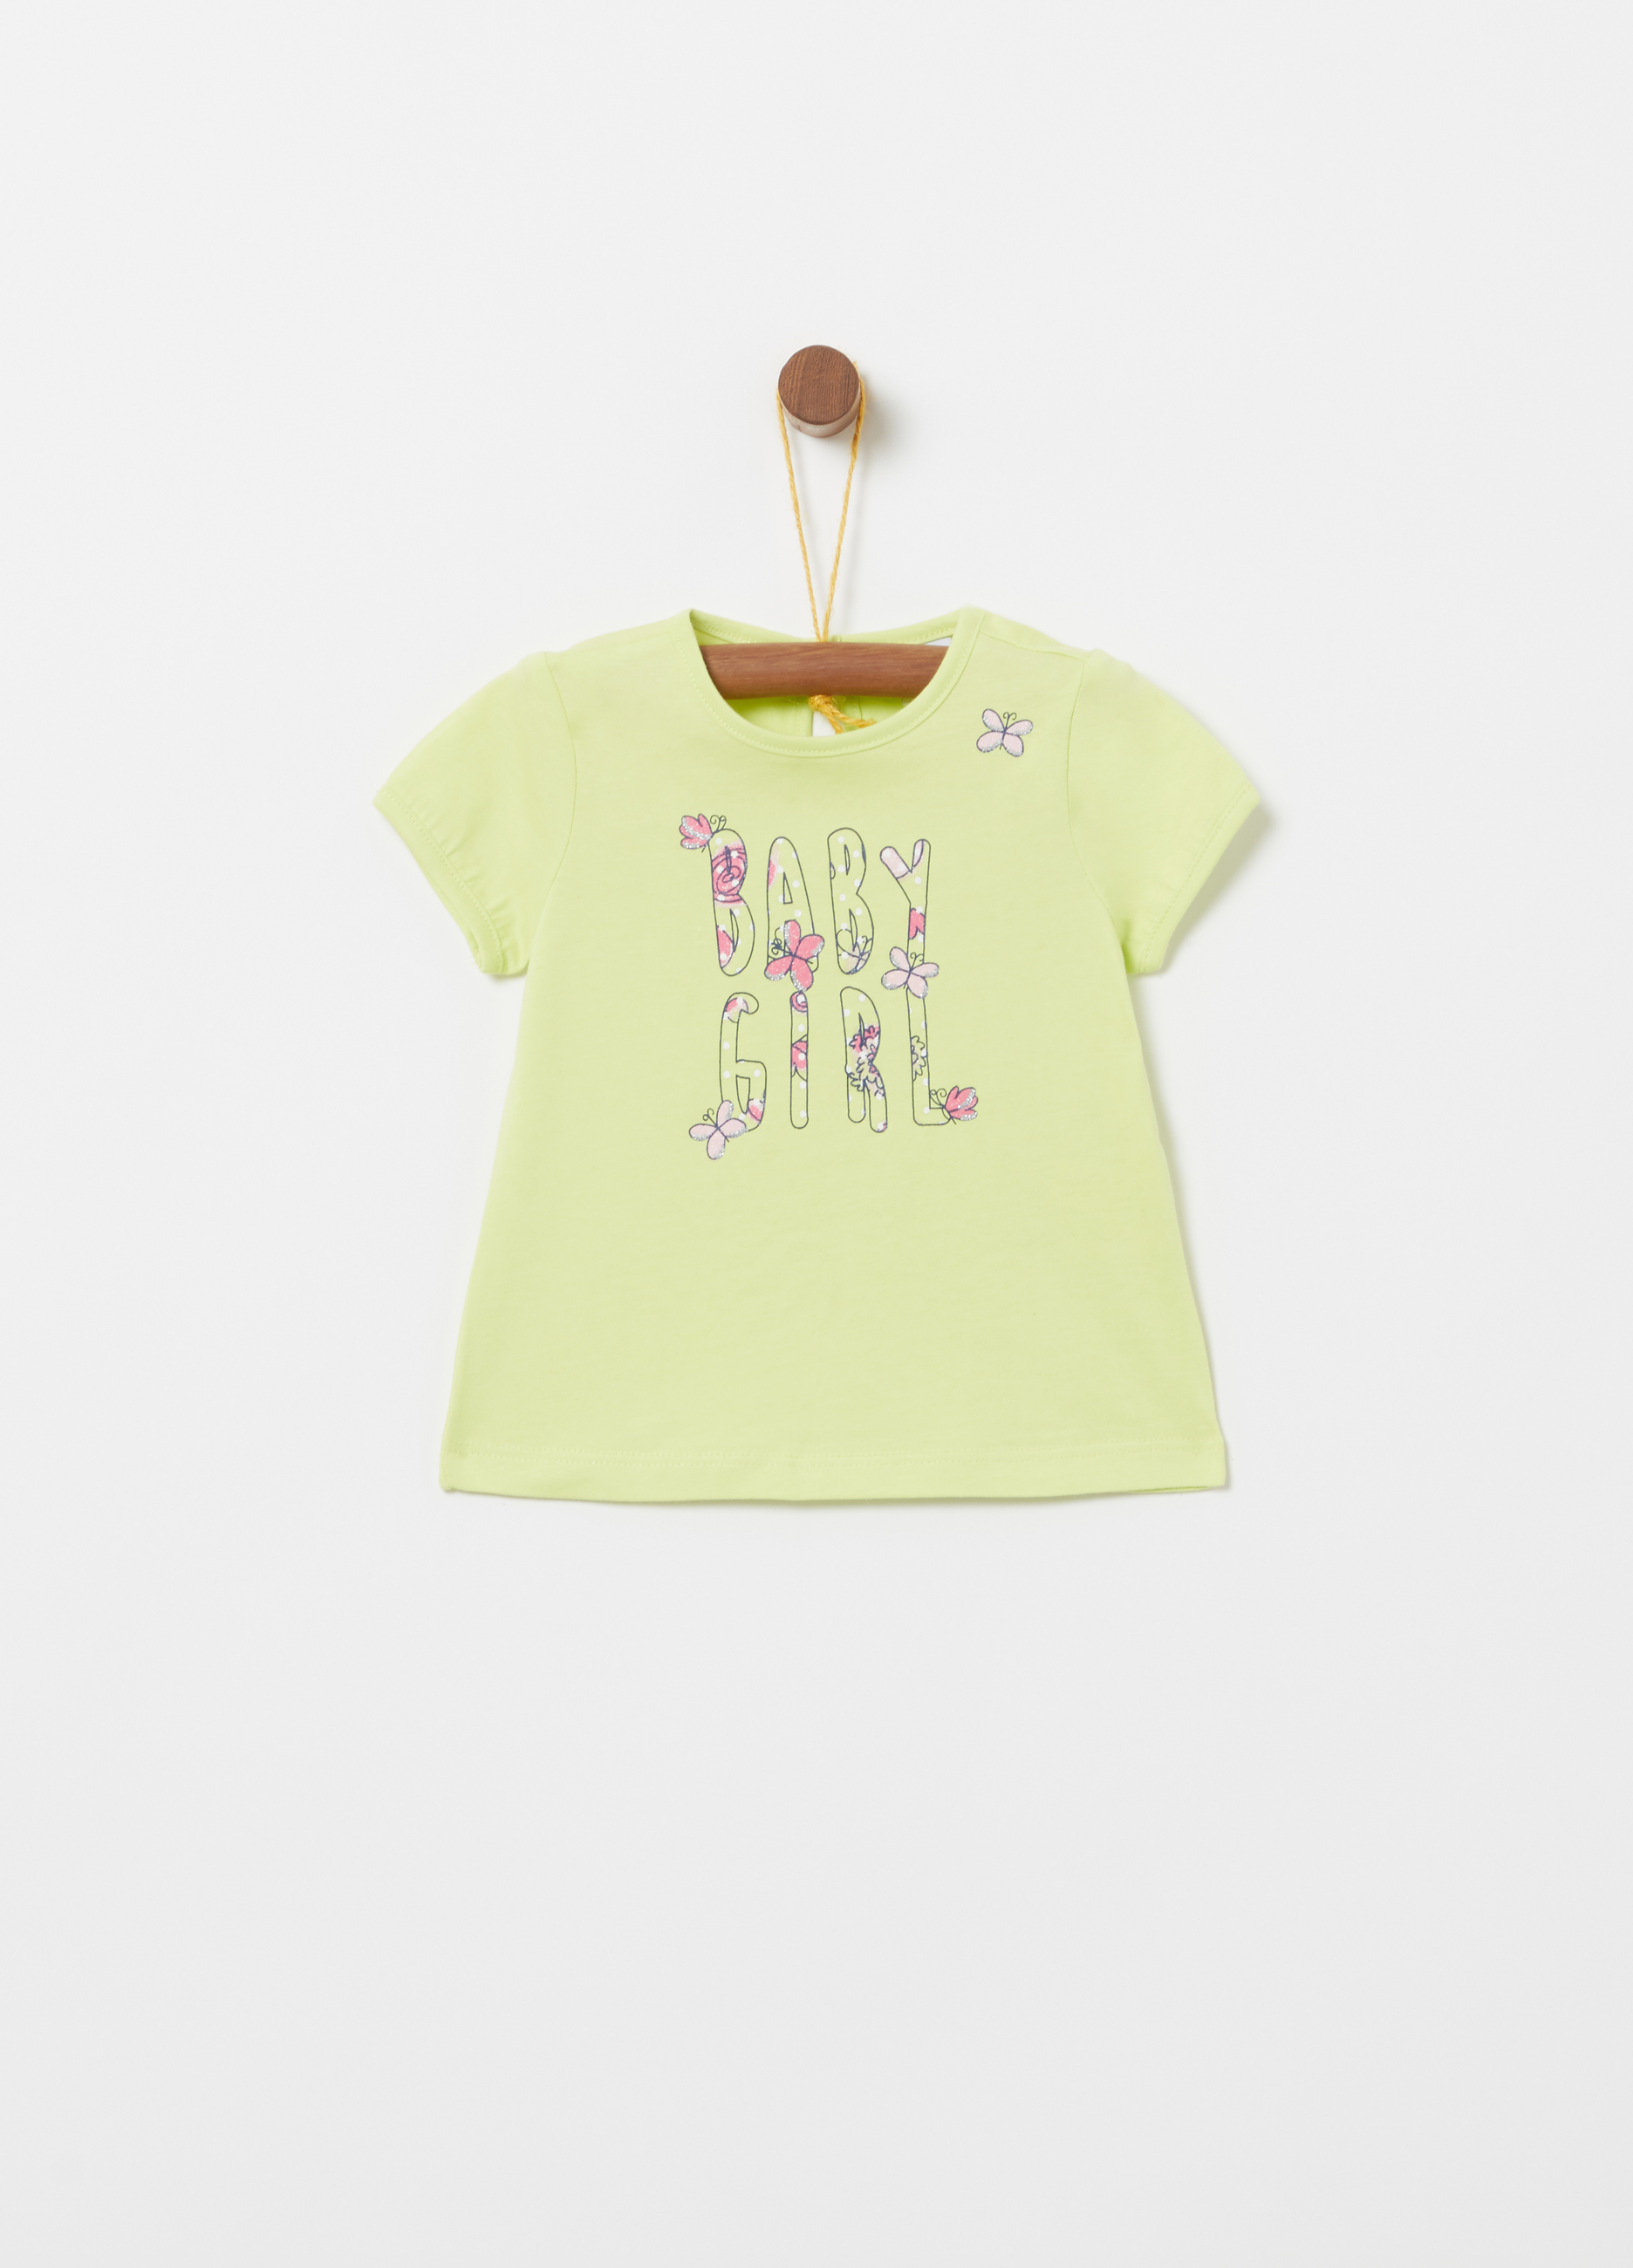 T-shirt in organic cotton jersey with print